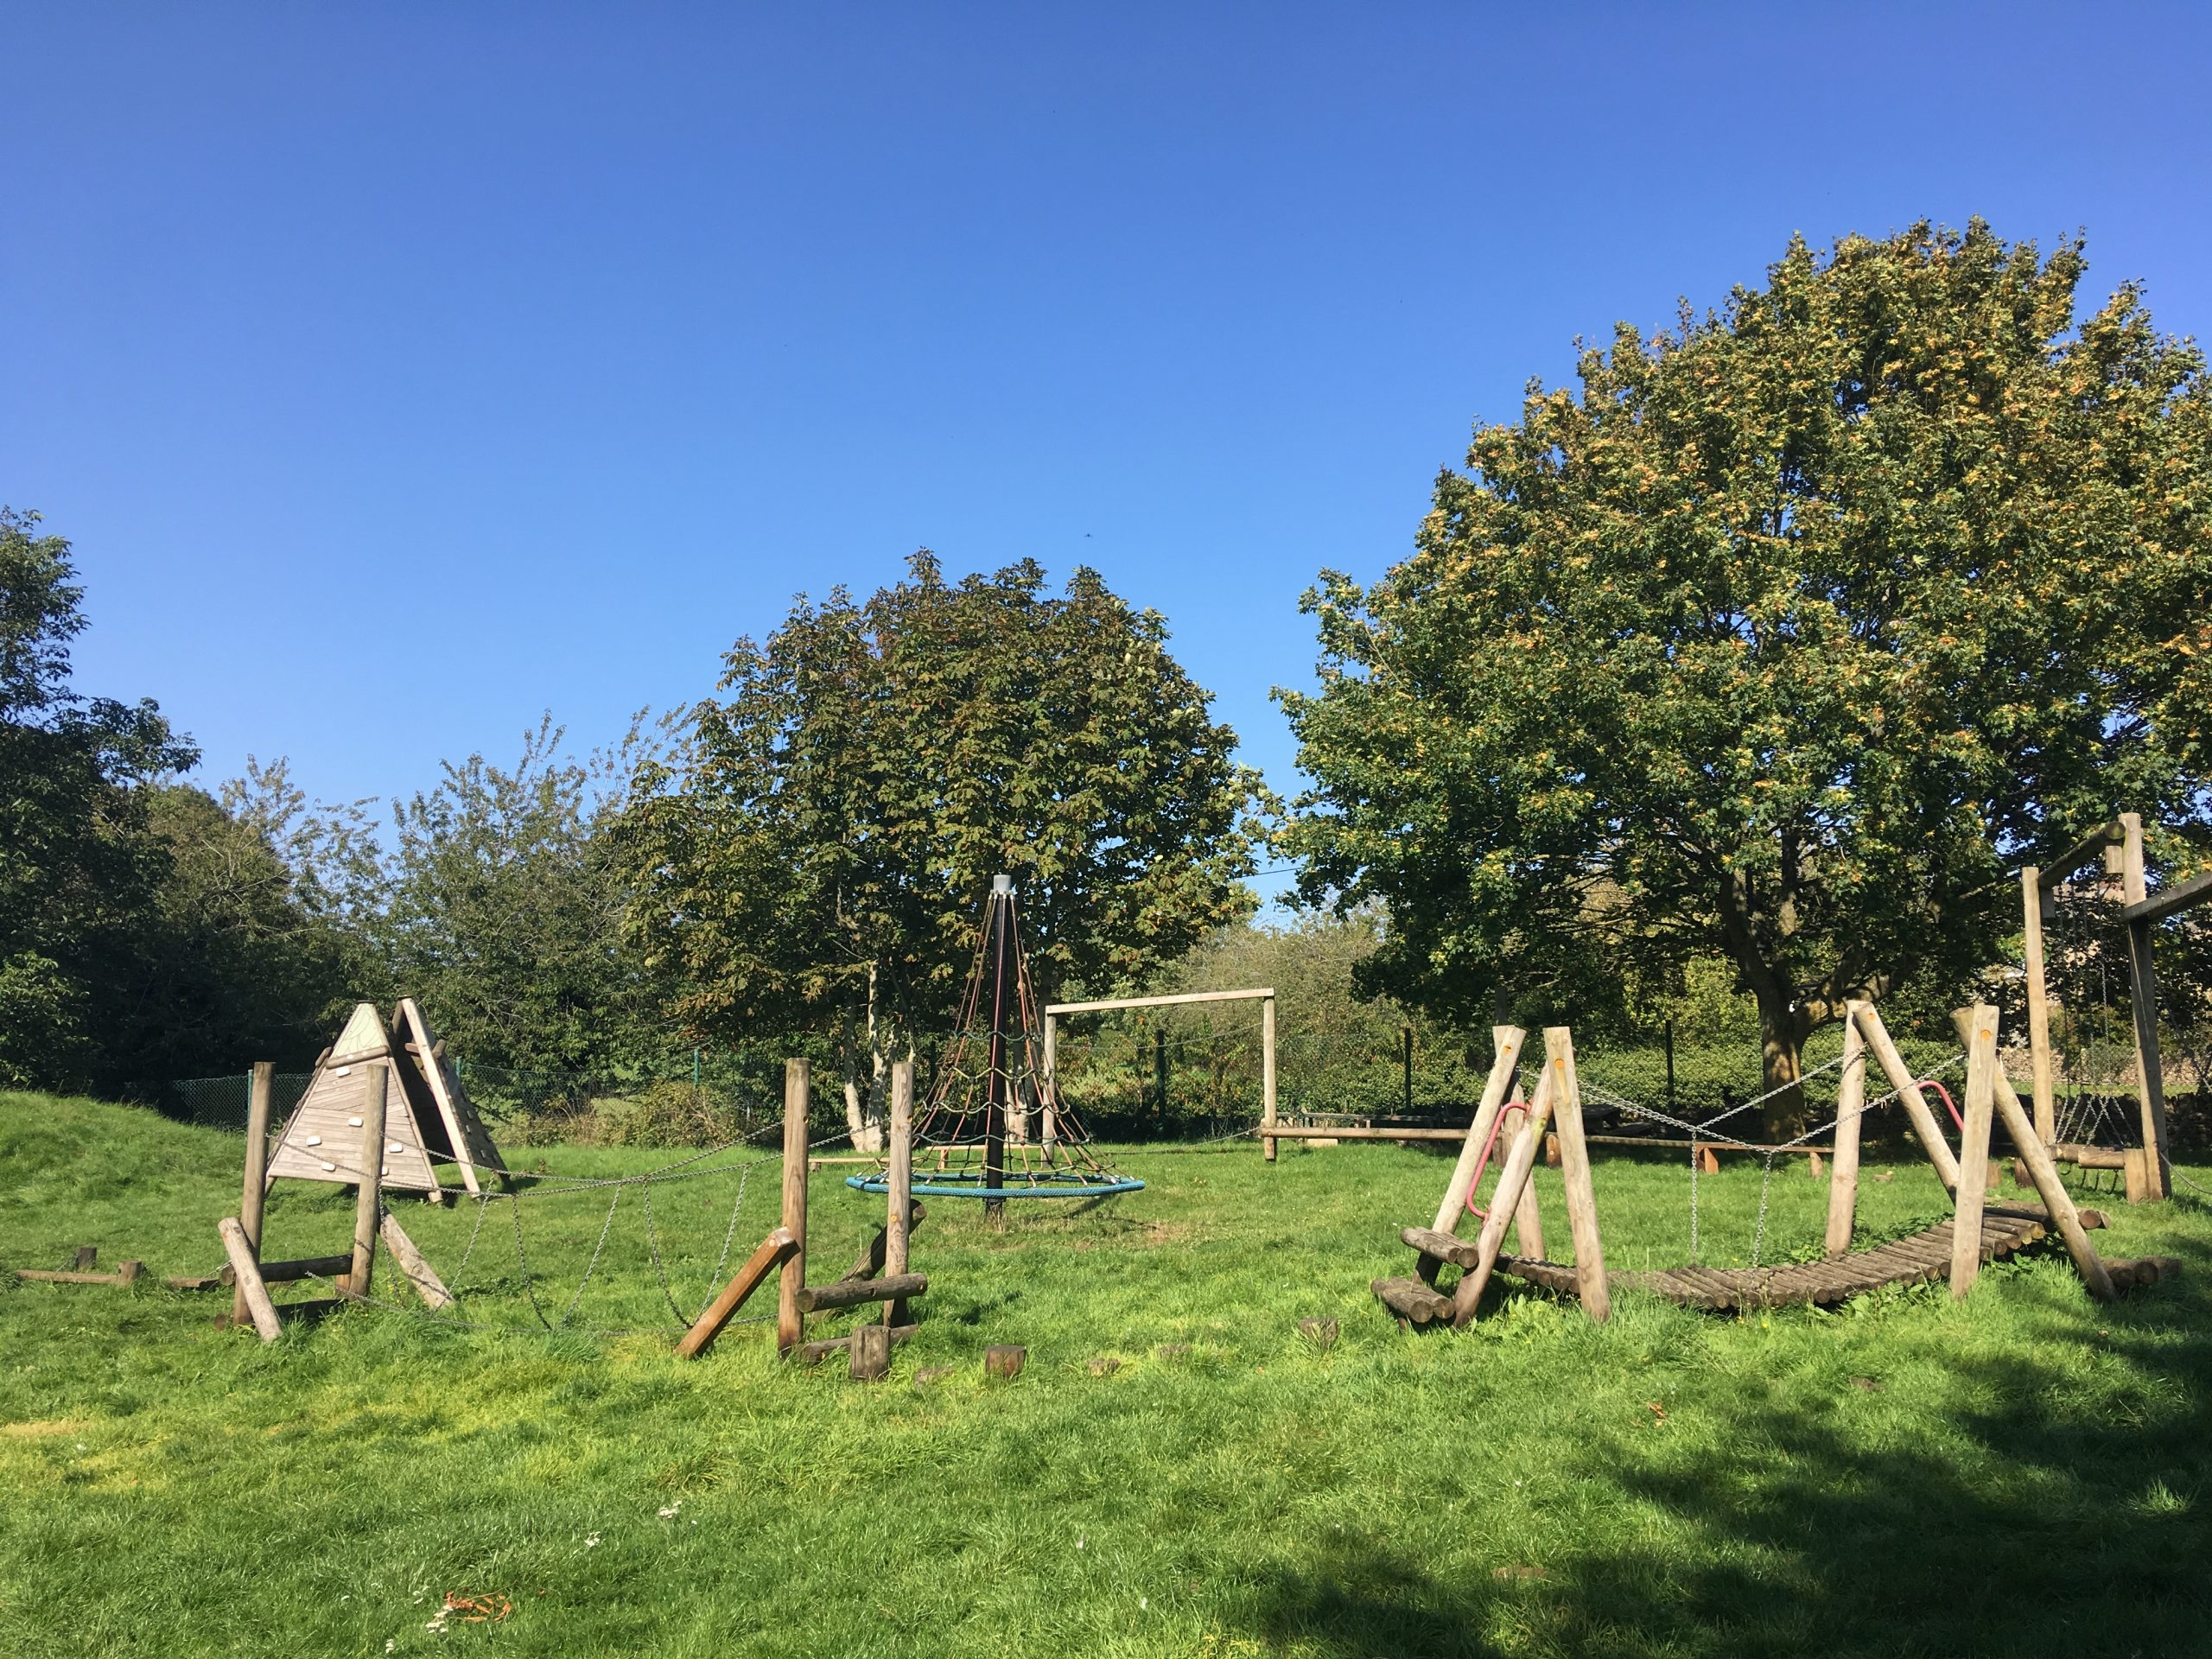 Chadlington Village Playground